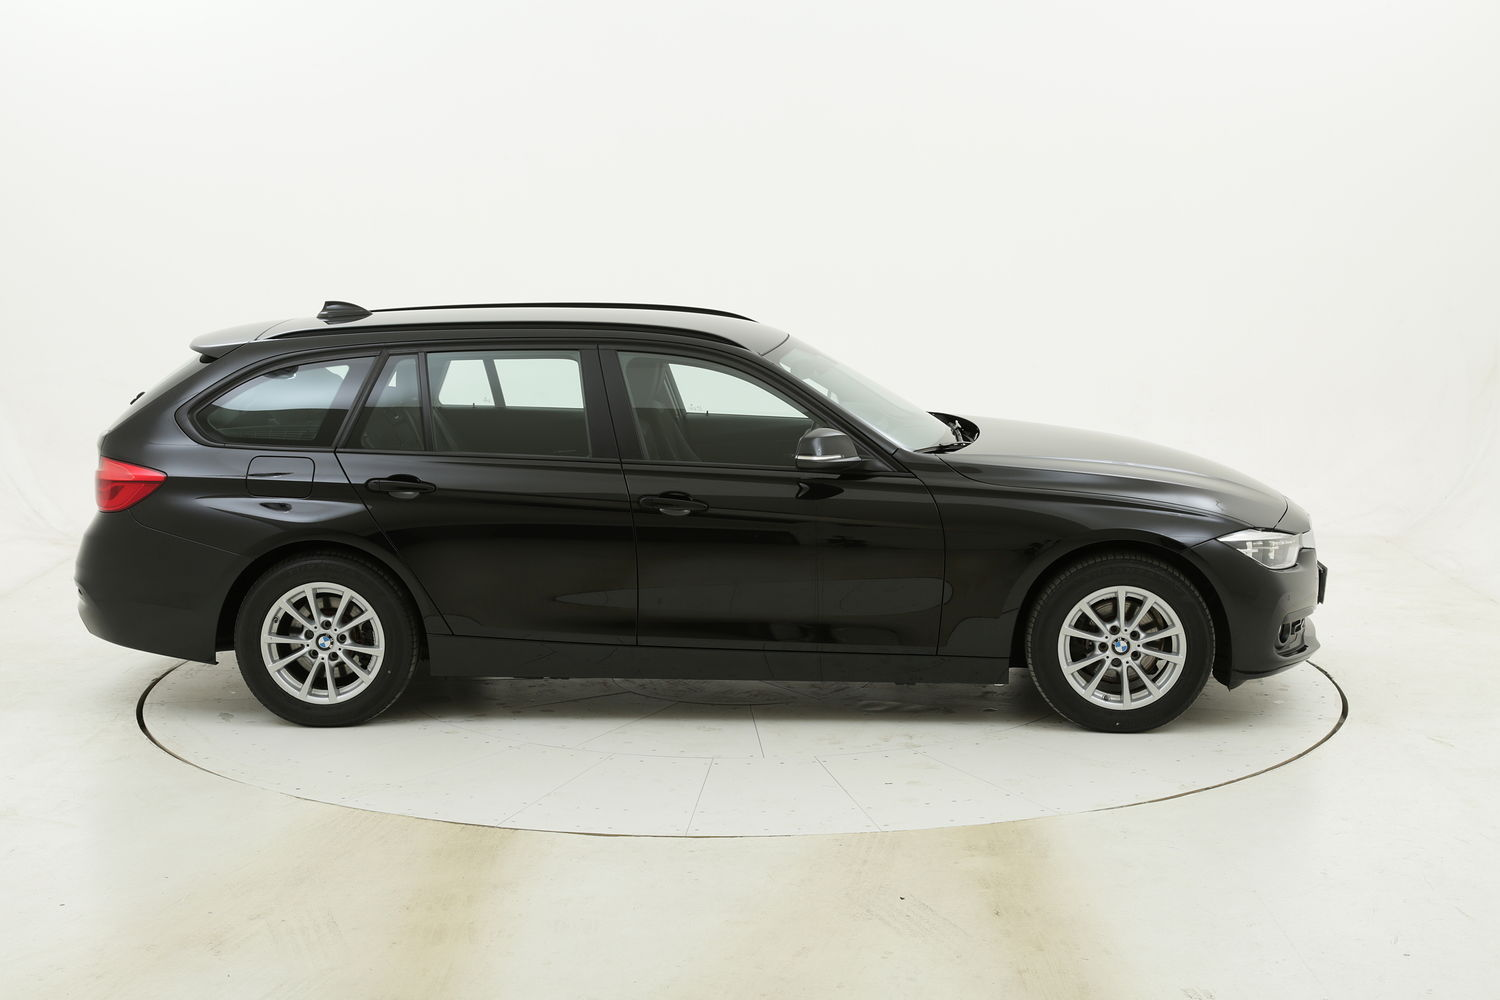 BMW Serie 3 318d Touring Business Advantage aut. usata del 2017 con 53.140 km